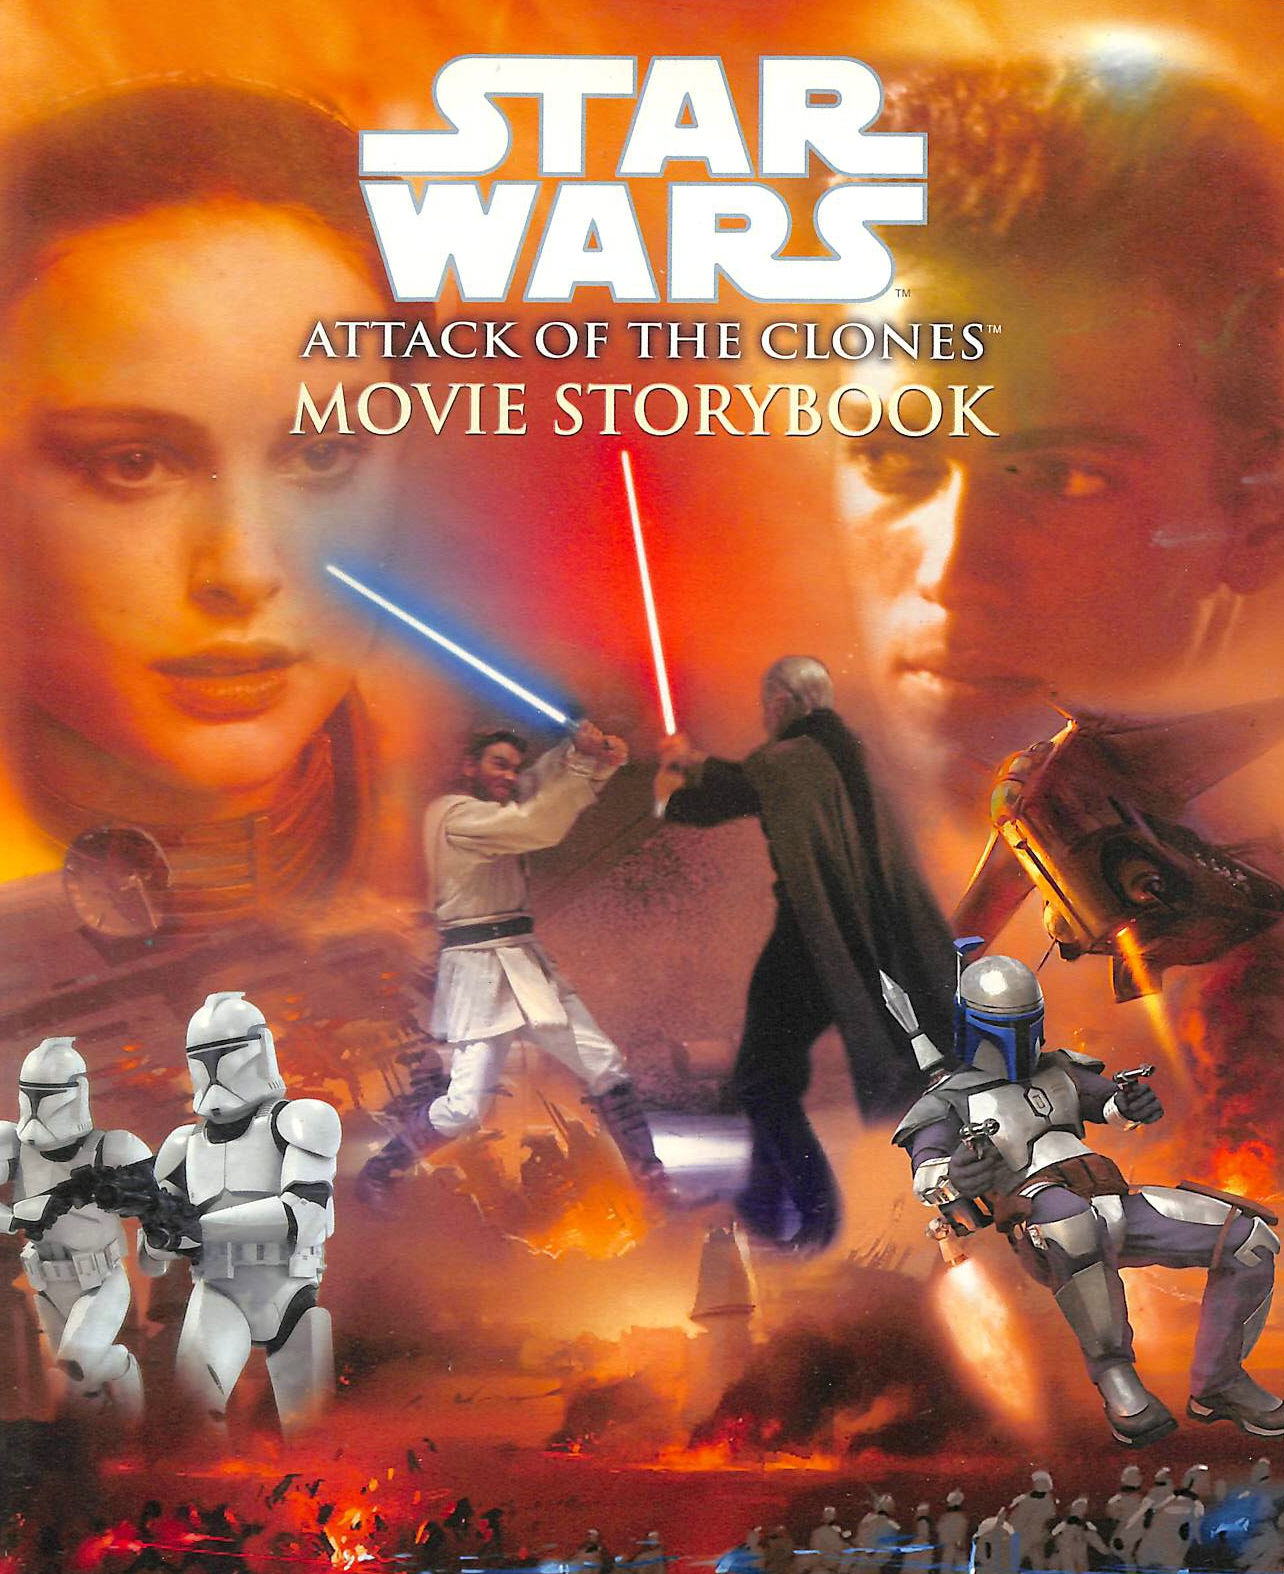 Image for Episode II Star Wars Movie Storybook: Movie Storybook (Episode II Star Wars S.)